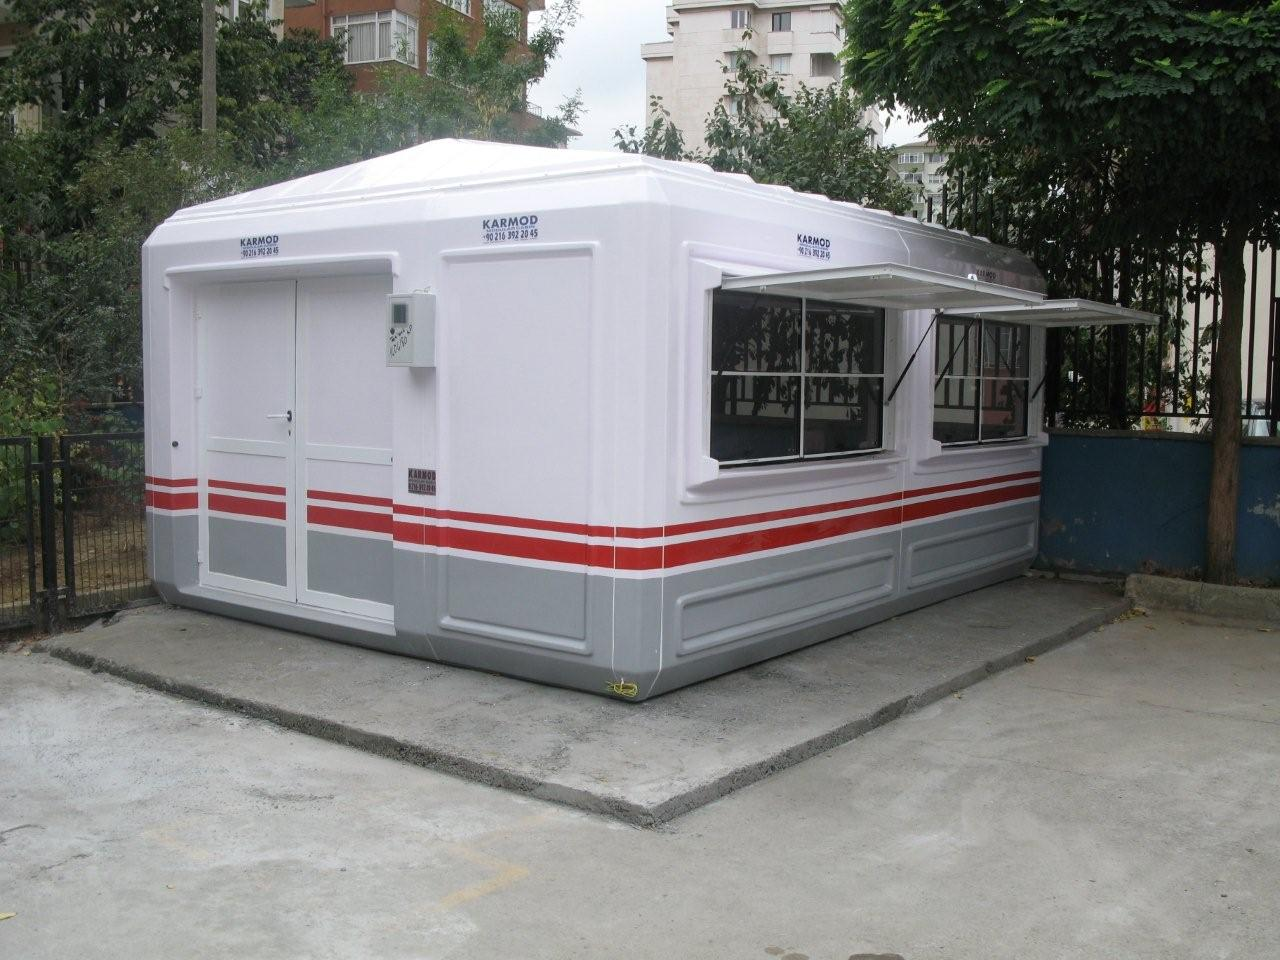 Container homes prefab container city homes for sale karmod - Container homes prefab ...